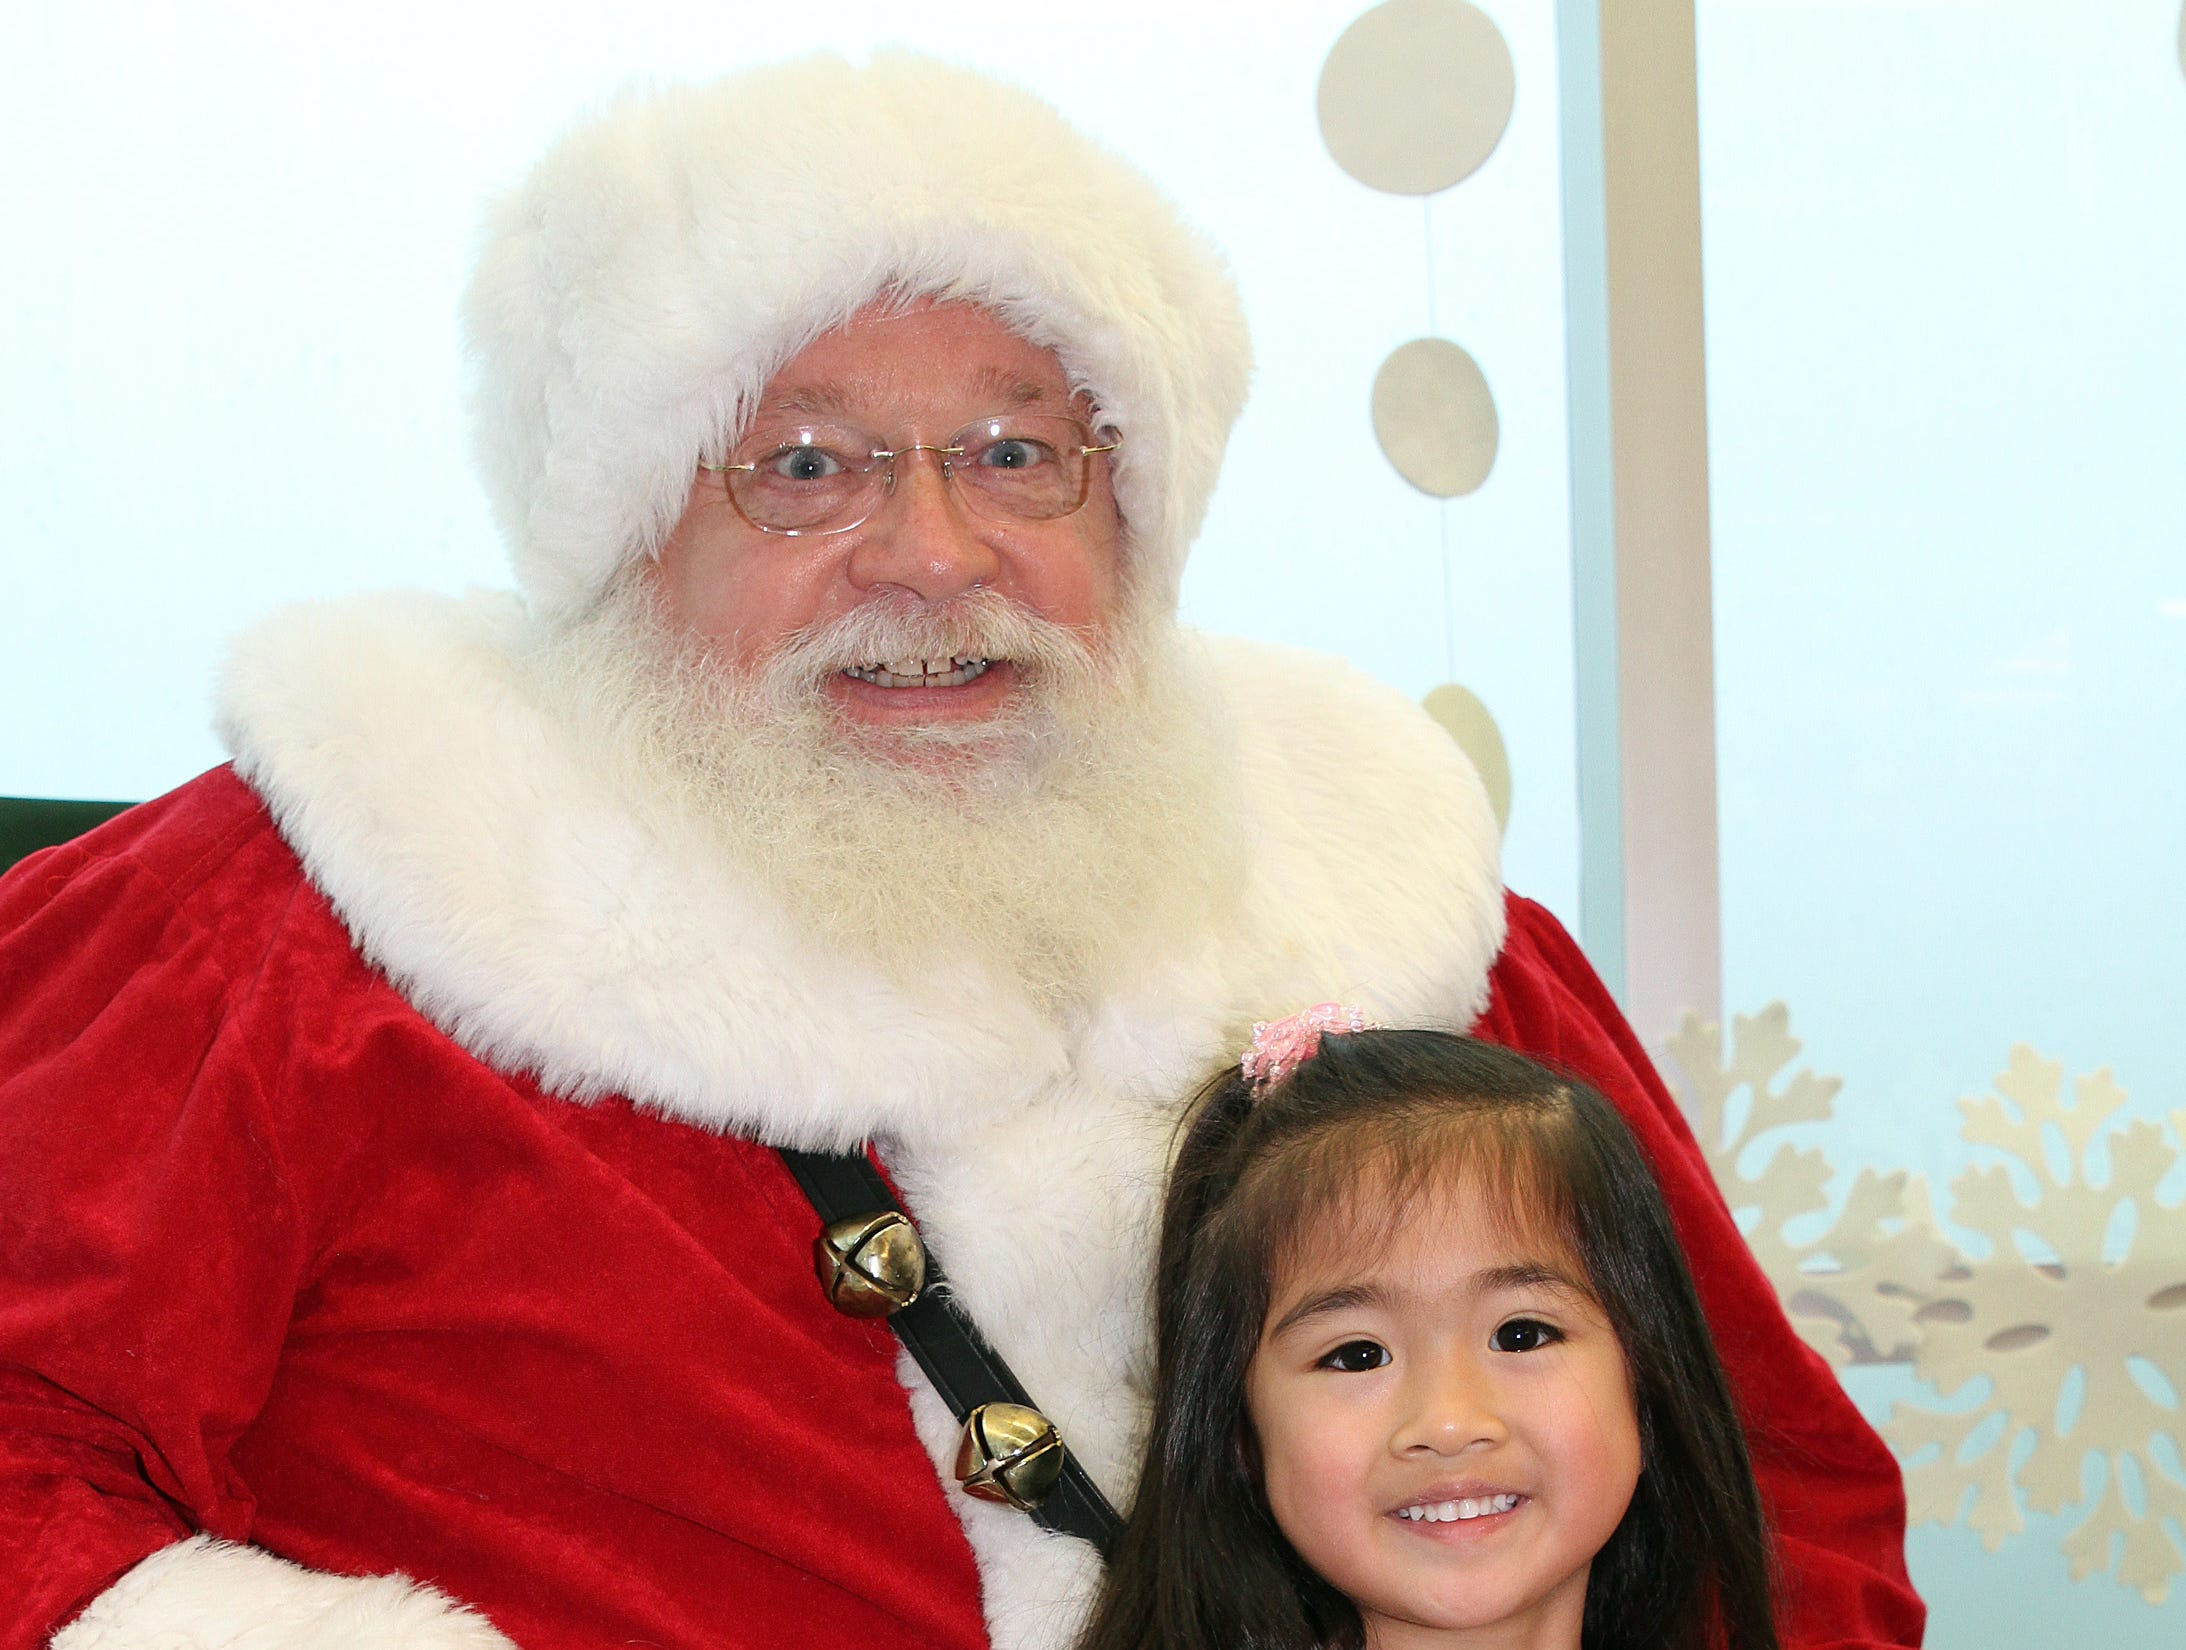 Shea Mary Minaldo, 4, of Johnston sits with Santa during Holidays in Johnston on Saturday, Dec. 1, 2018 at the Johnston Public Library featuring a gingerbread house contest, cookie decorating, holiday music performed by the Johnston Middle School Ninth Grade Chamber Choir, story time and Santa.